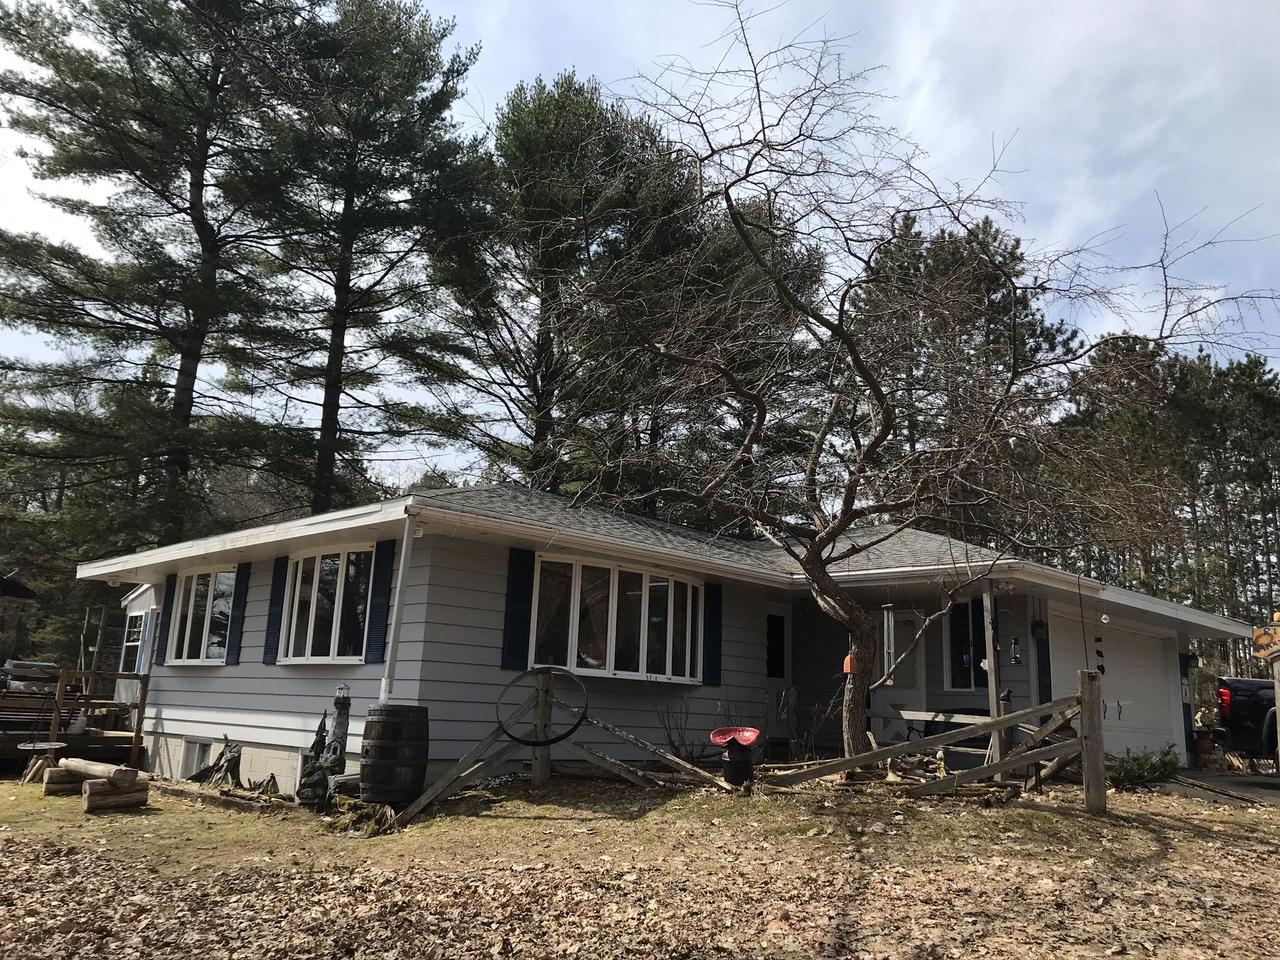 MENOMINEE RIVER- WORK FROM HOME .  90 ft frontage with sandy bottom, 1.43 acres,  3 bdrms, 2 1/2 baths. Main floor has open concept large living room /dining room,  with beautiful view of the river. Cozy siting/TV room with wood burning insert  fireplace, roomy kitchen.    Great for fishing, kayaking, swimming. Four seasons room to enjoy just off kitchen. 2 car attached garage with  basement and main floor entry. Finished basement with bar area,  family room, hot tub. & 1/2 bath.  Electricity at shore for  lighting up your play area. Newer roof, water heater and furnace updates.  Awesome for entertaining.  Barn 25X32 with stalls for 3 horses and fencing.ASTREA Satellite Internet Available